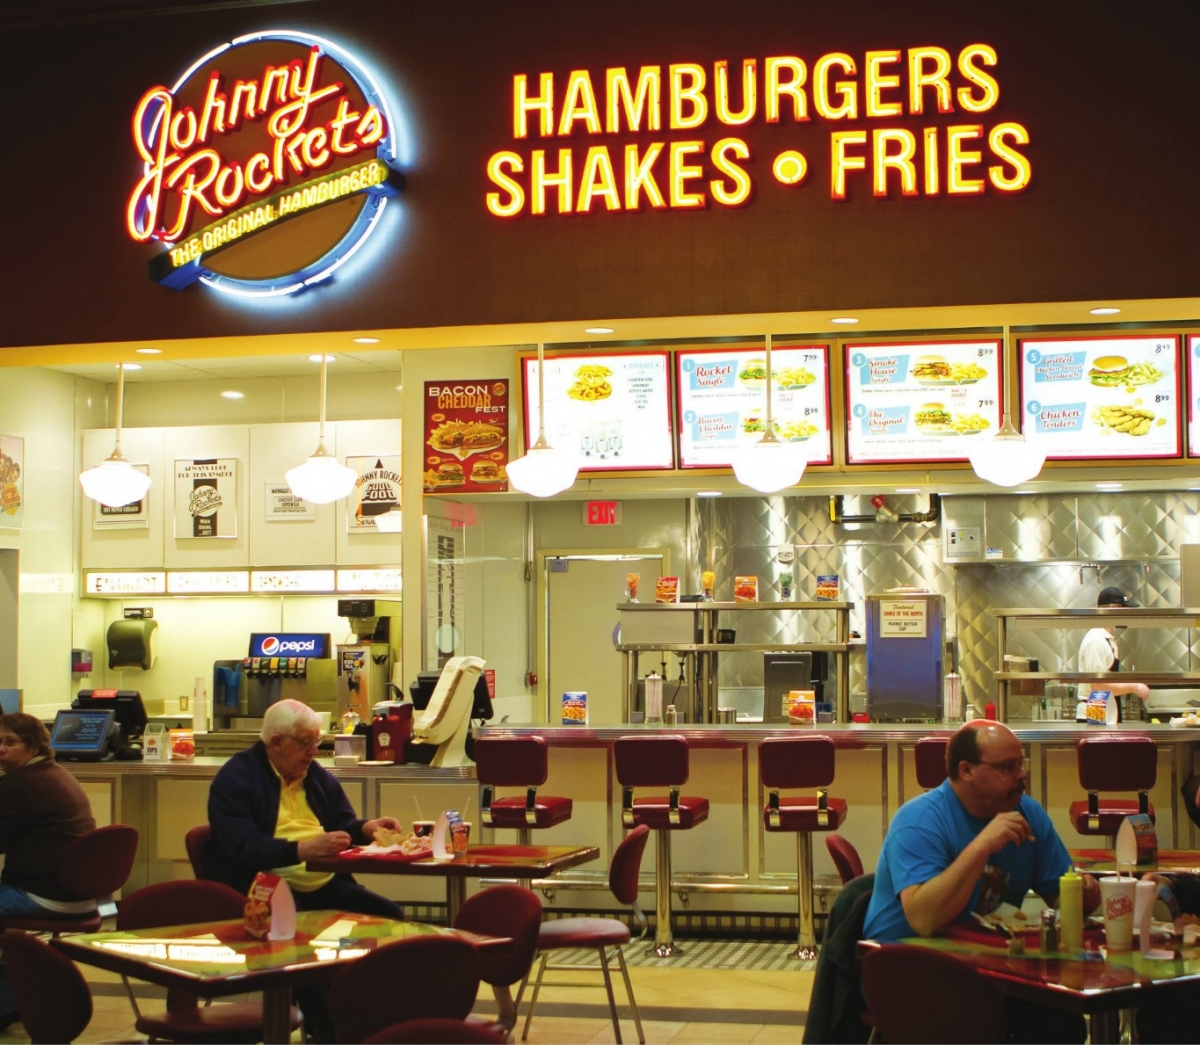 Johnny rockets sweet potato fries calories